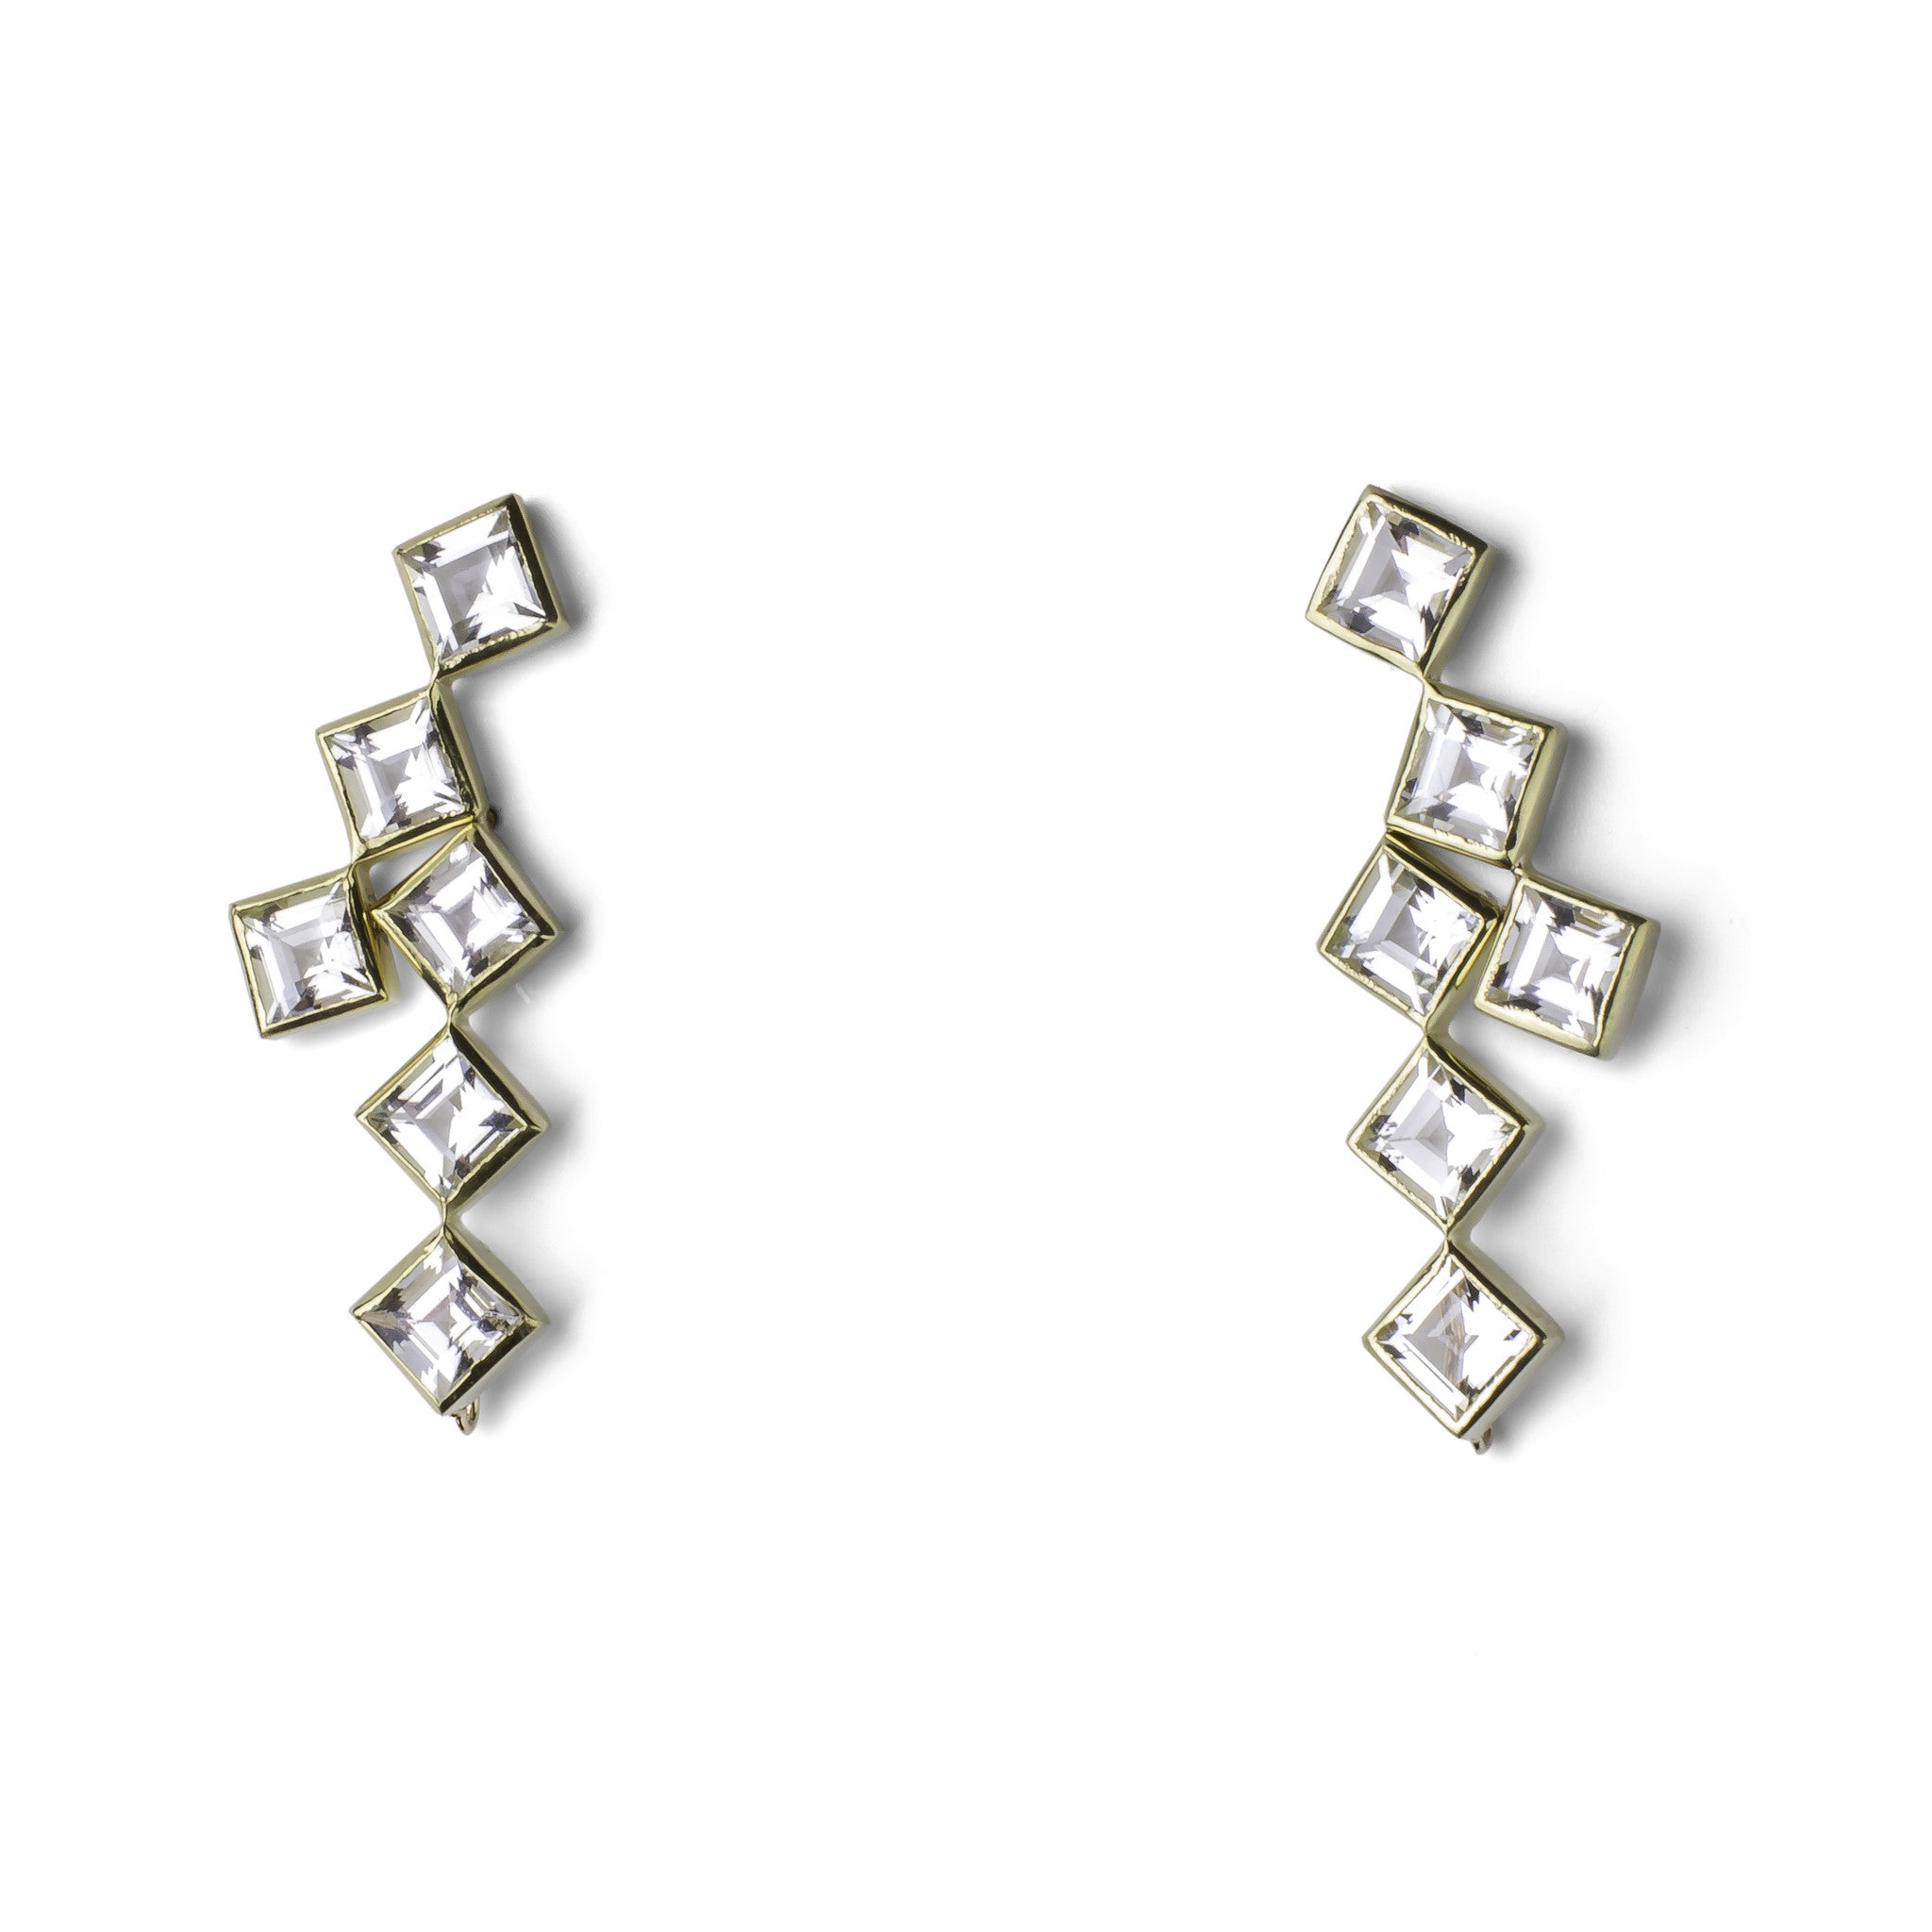 Crosswalk Earrings - White Topaz - Joan Hornig Jewelry